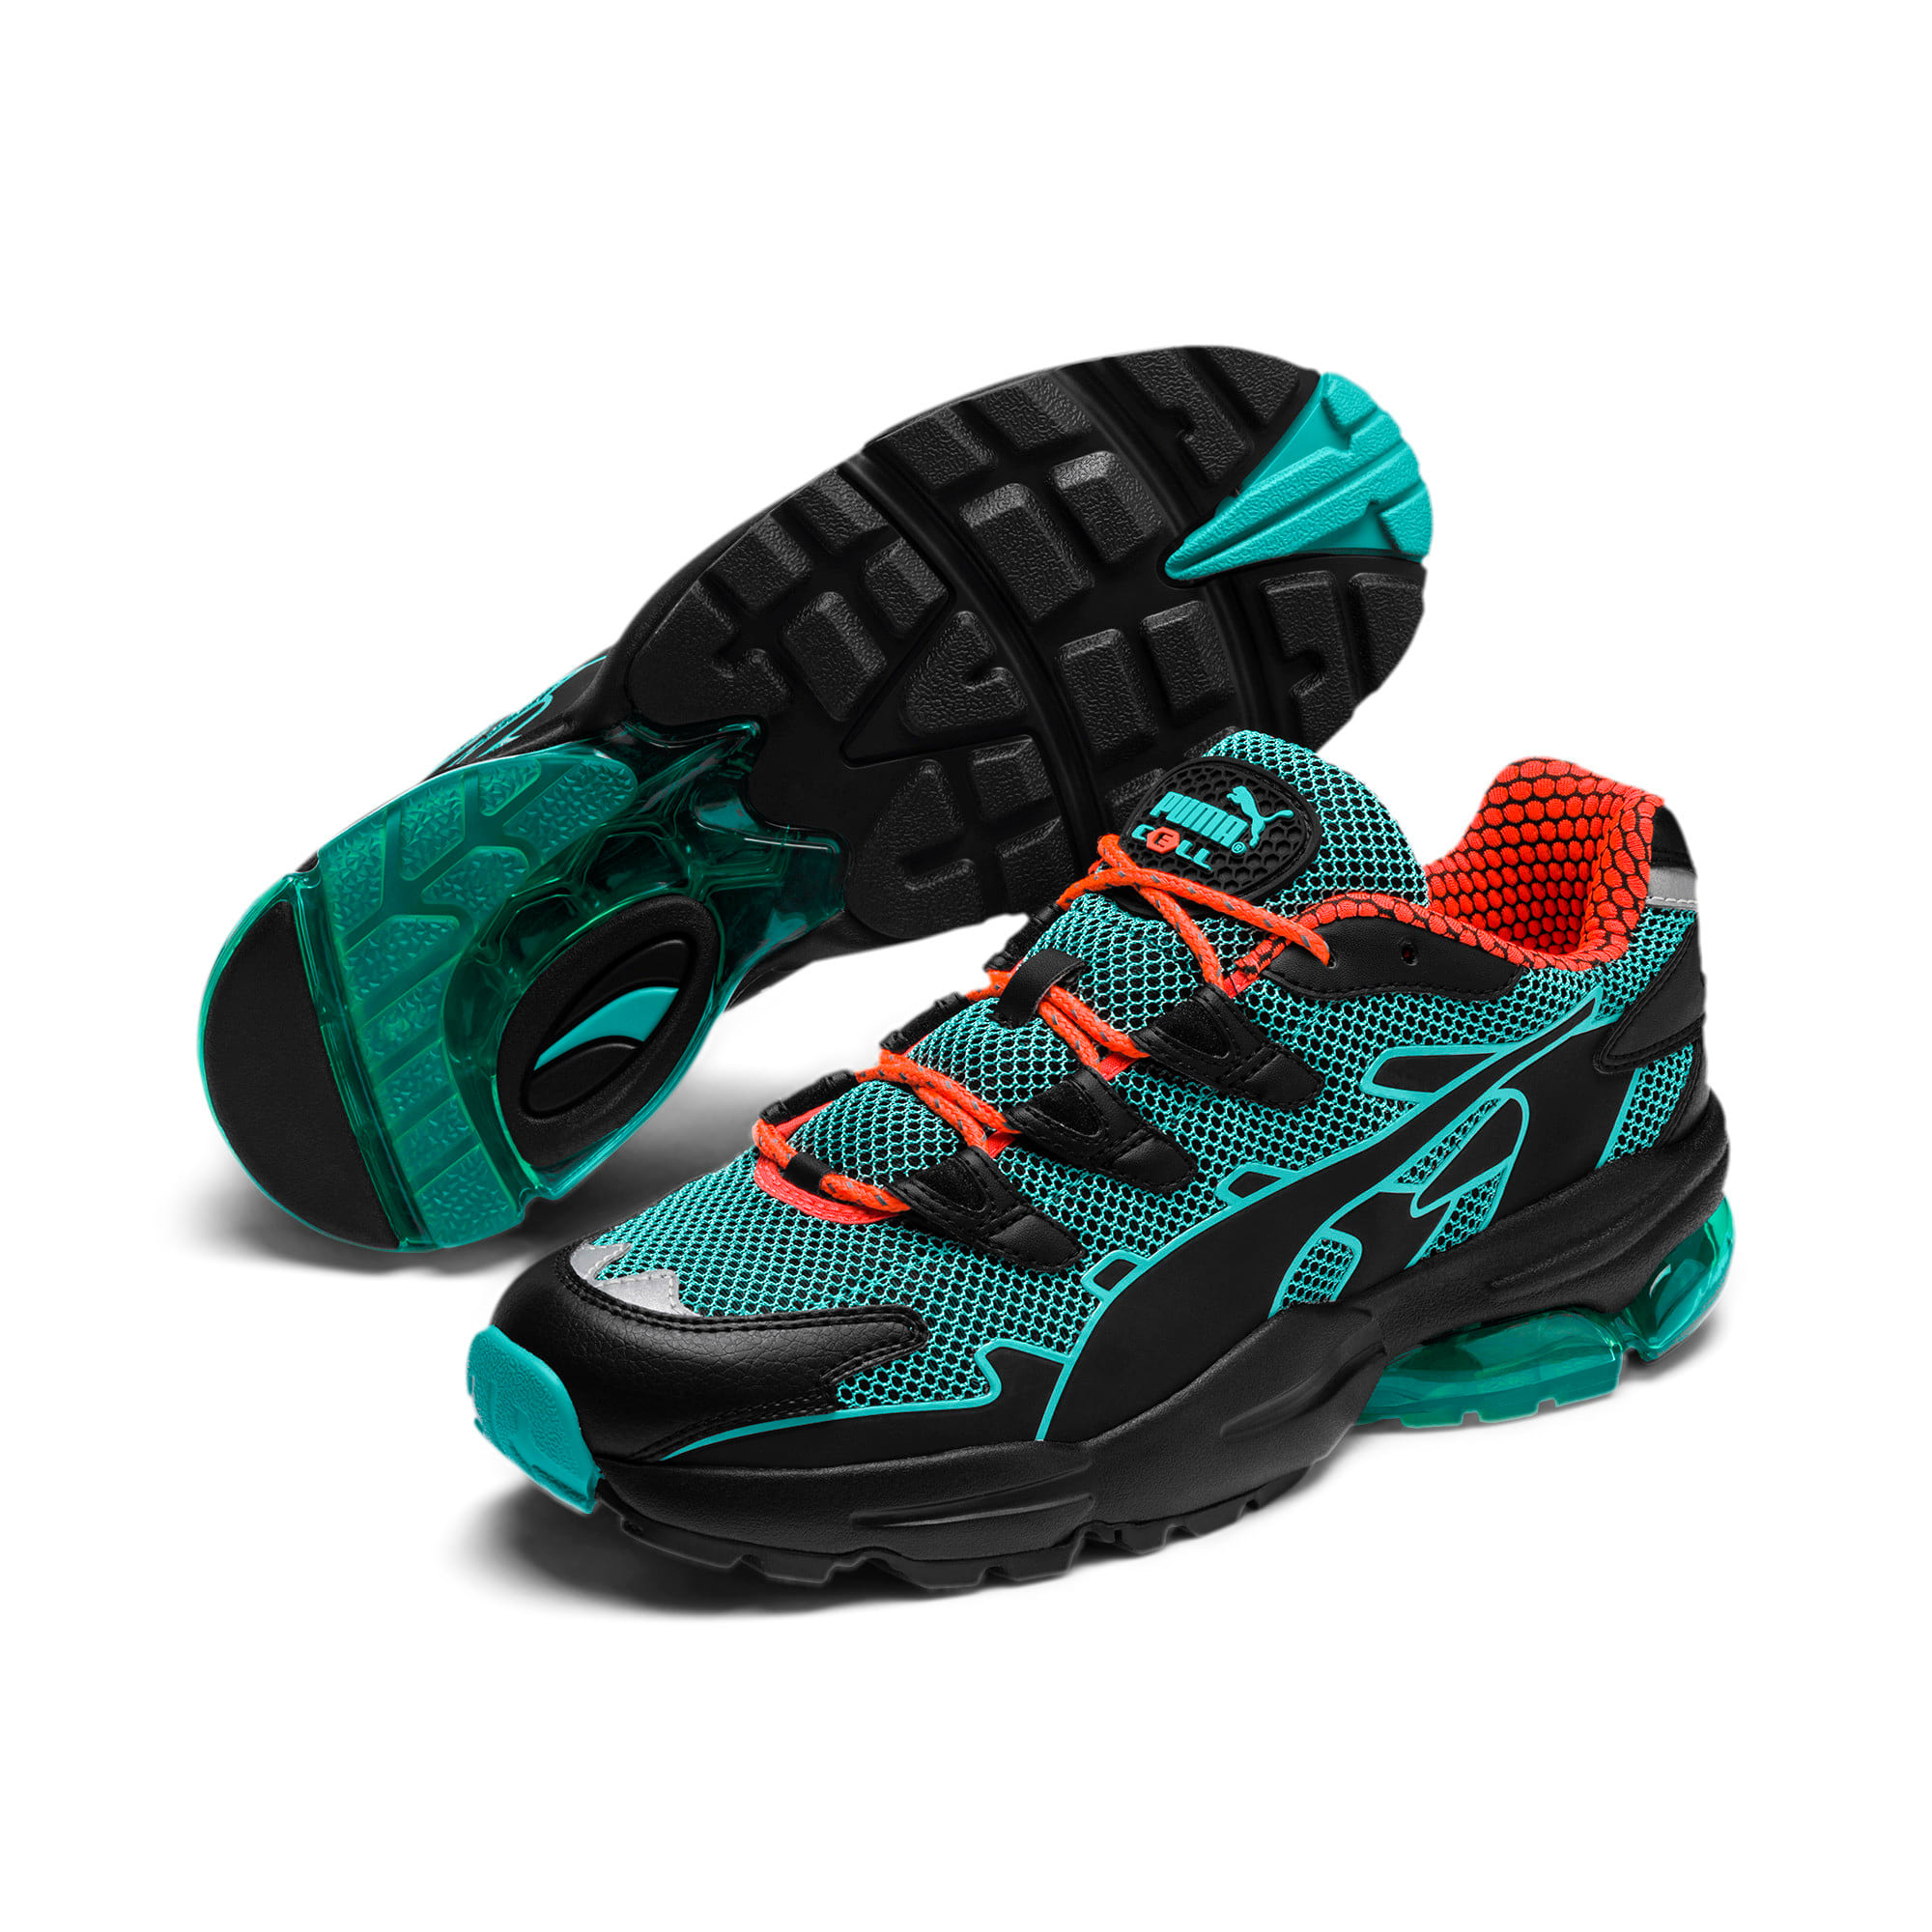 Thumbnail 3 of CELL Alien Kotto Trainers, Puma Black-Blue Turquoise, medium